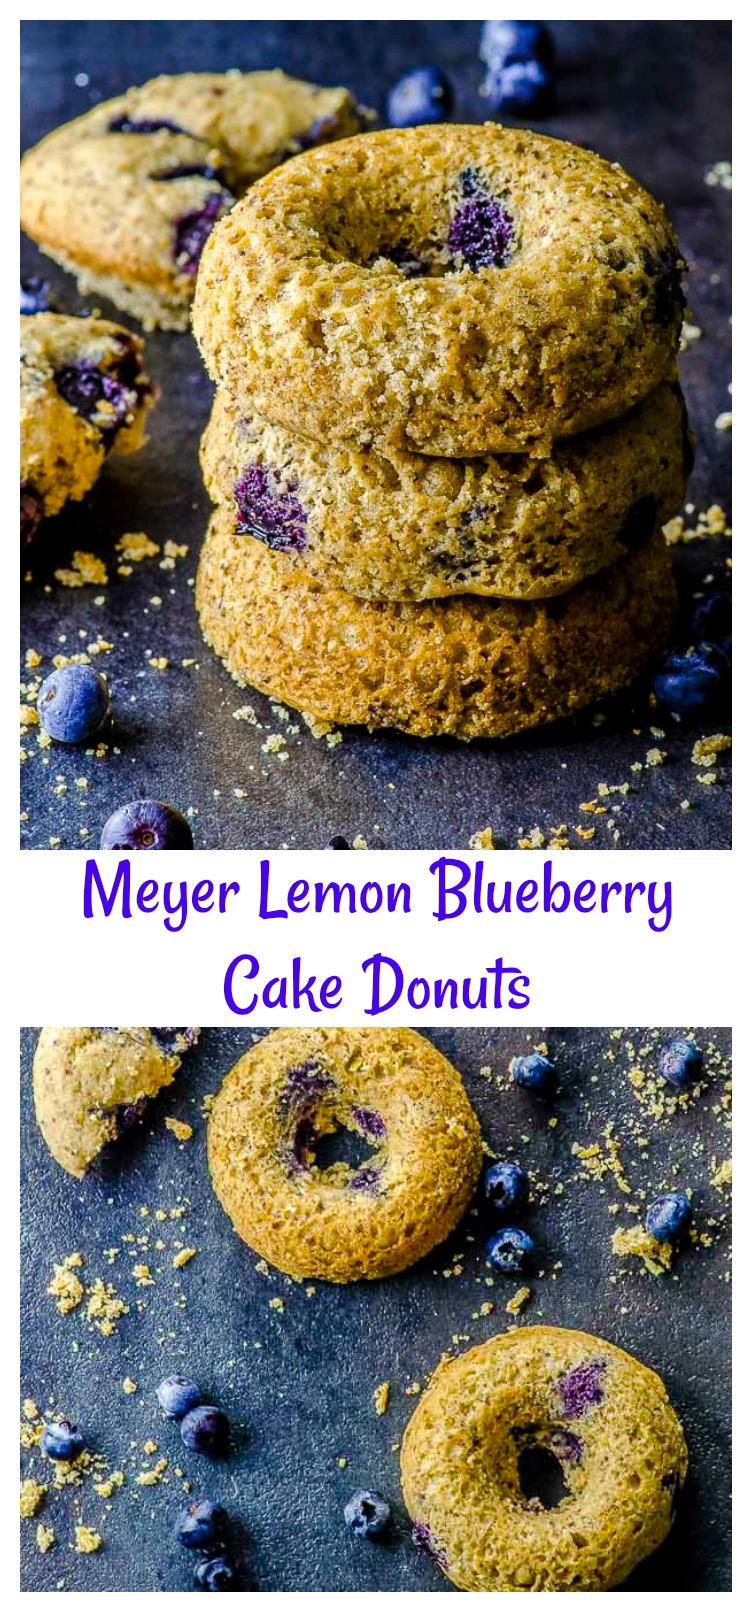 Delicious vegan cake donuts that combine the bright sweetness of Meyer lemons with juicy blueberries without the oil of traditional fried donuts